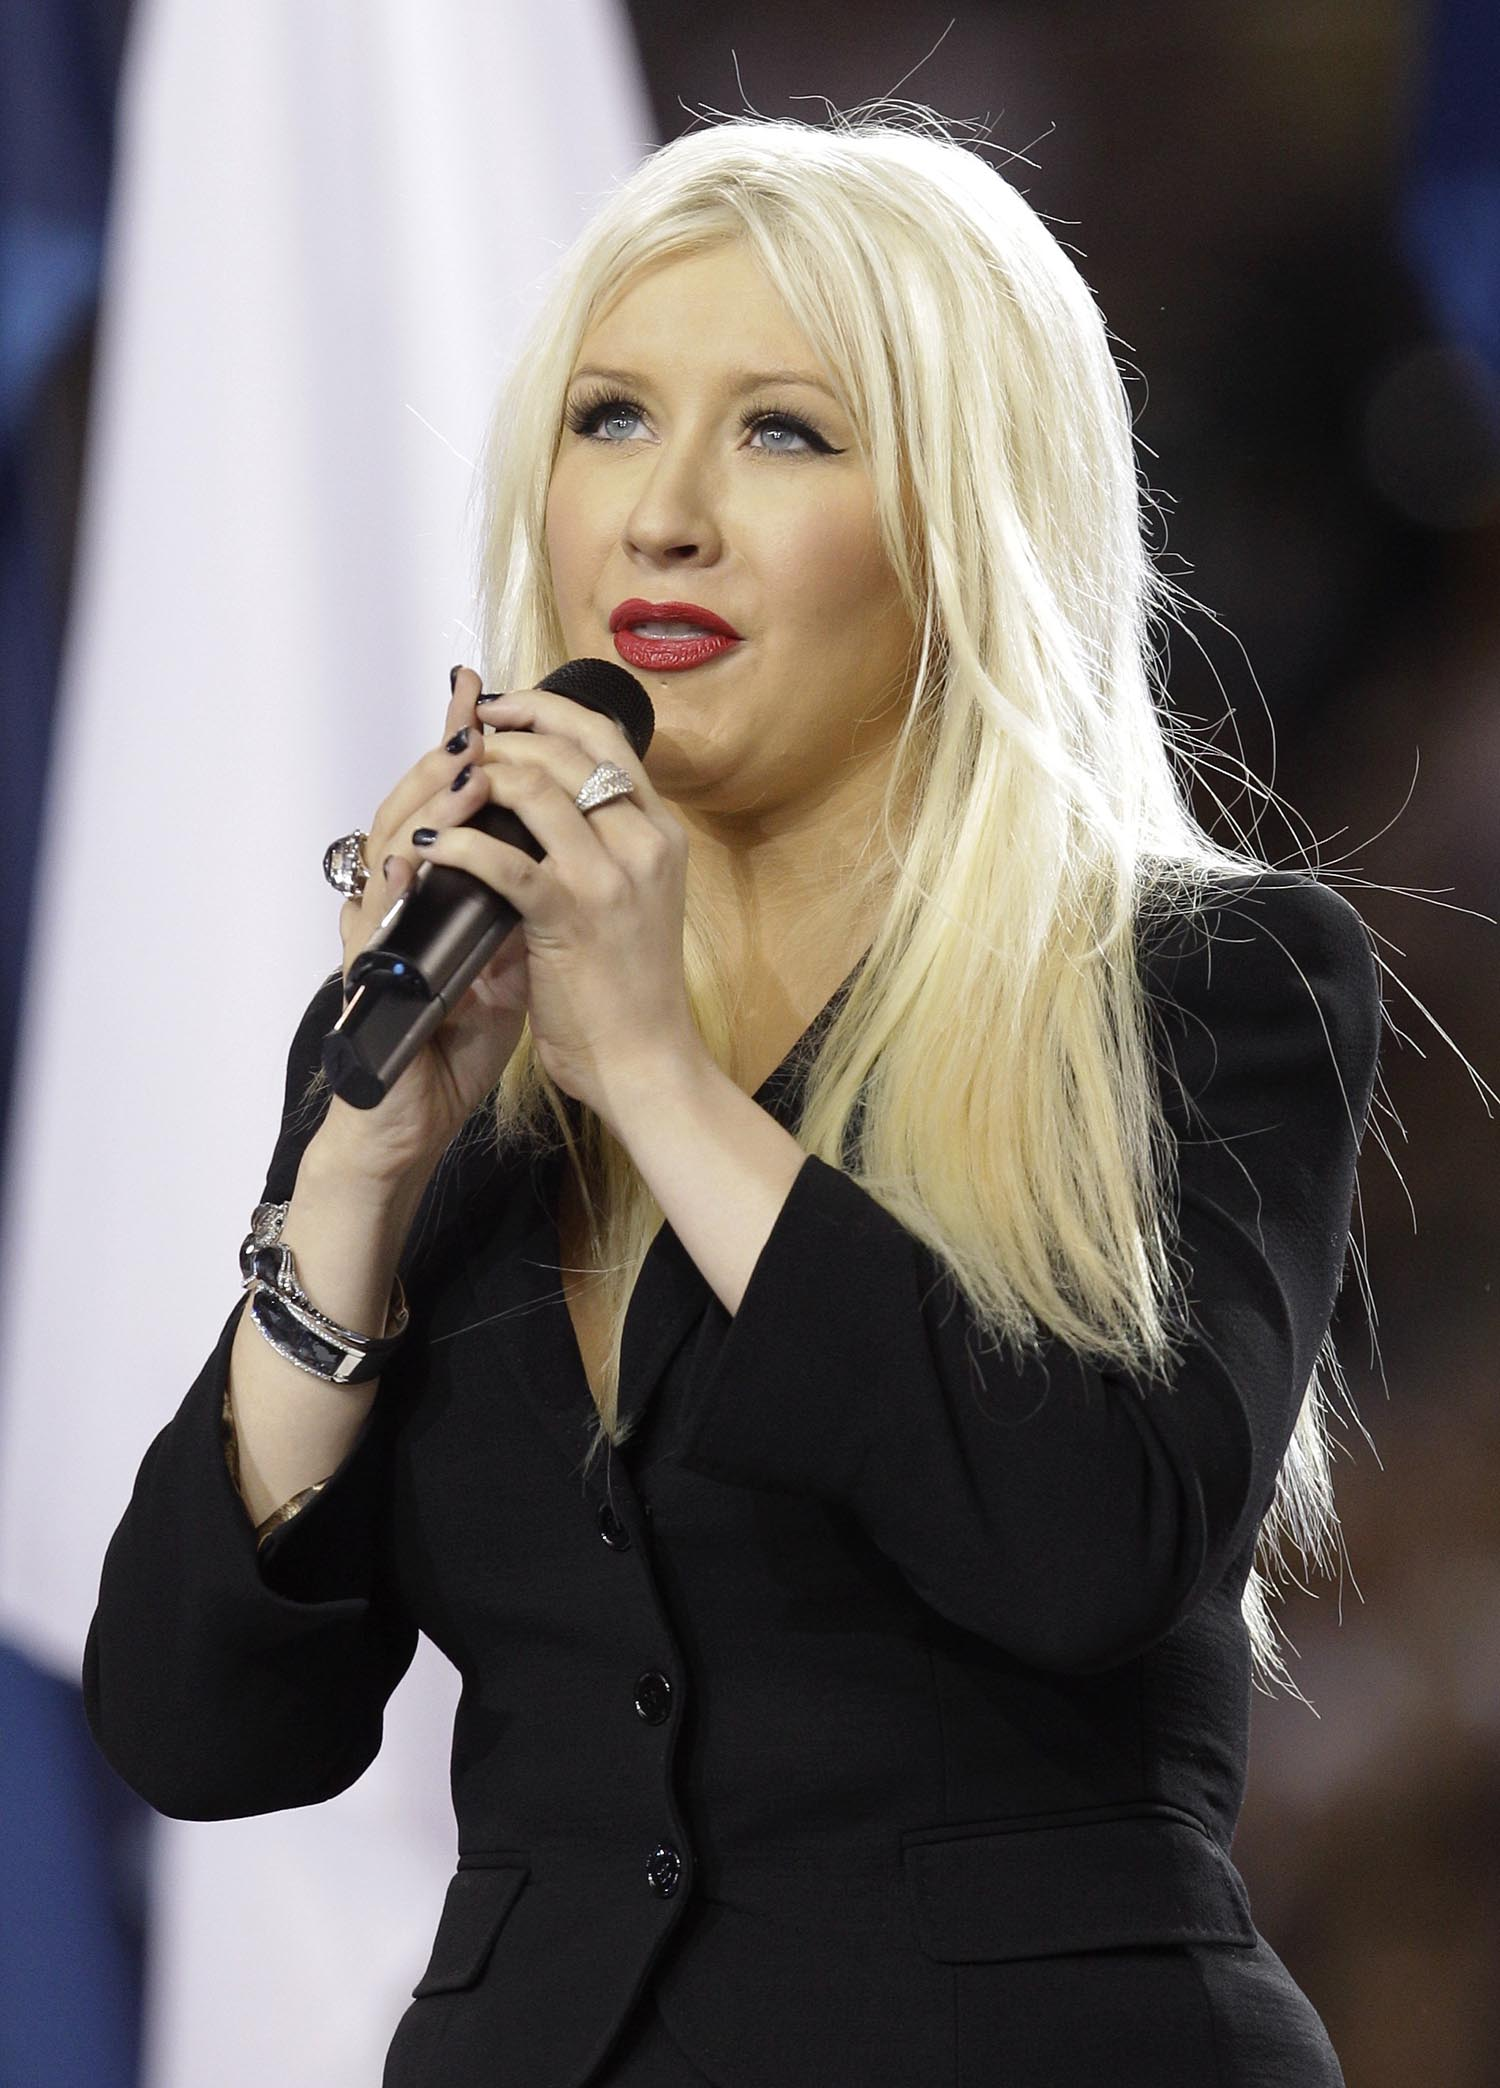 "<div class=""meta image-caption""><div class=""origin-logo origin-image ap""><span>AP</span></div><span class=""caption-text"">2011: Christina Aguilera sings the national anthem before the NFL football Super Bowl XLV game between the Green Bay Packers and the Pittsburgh Steelers in Arlington, Texas. (AP Photo/David J. Phillip)</span></div>"